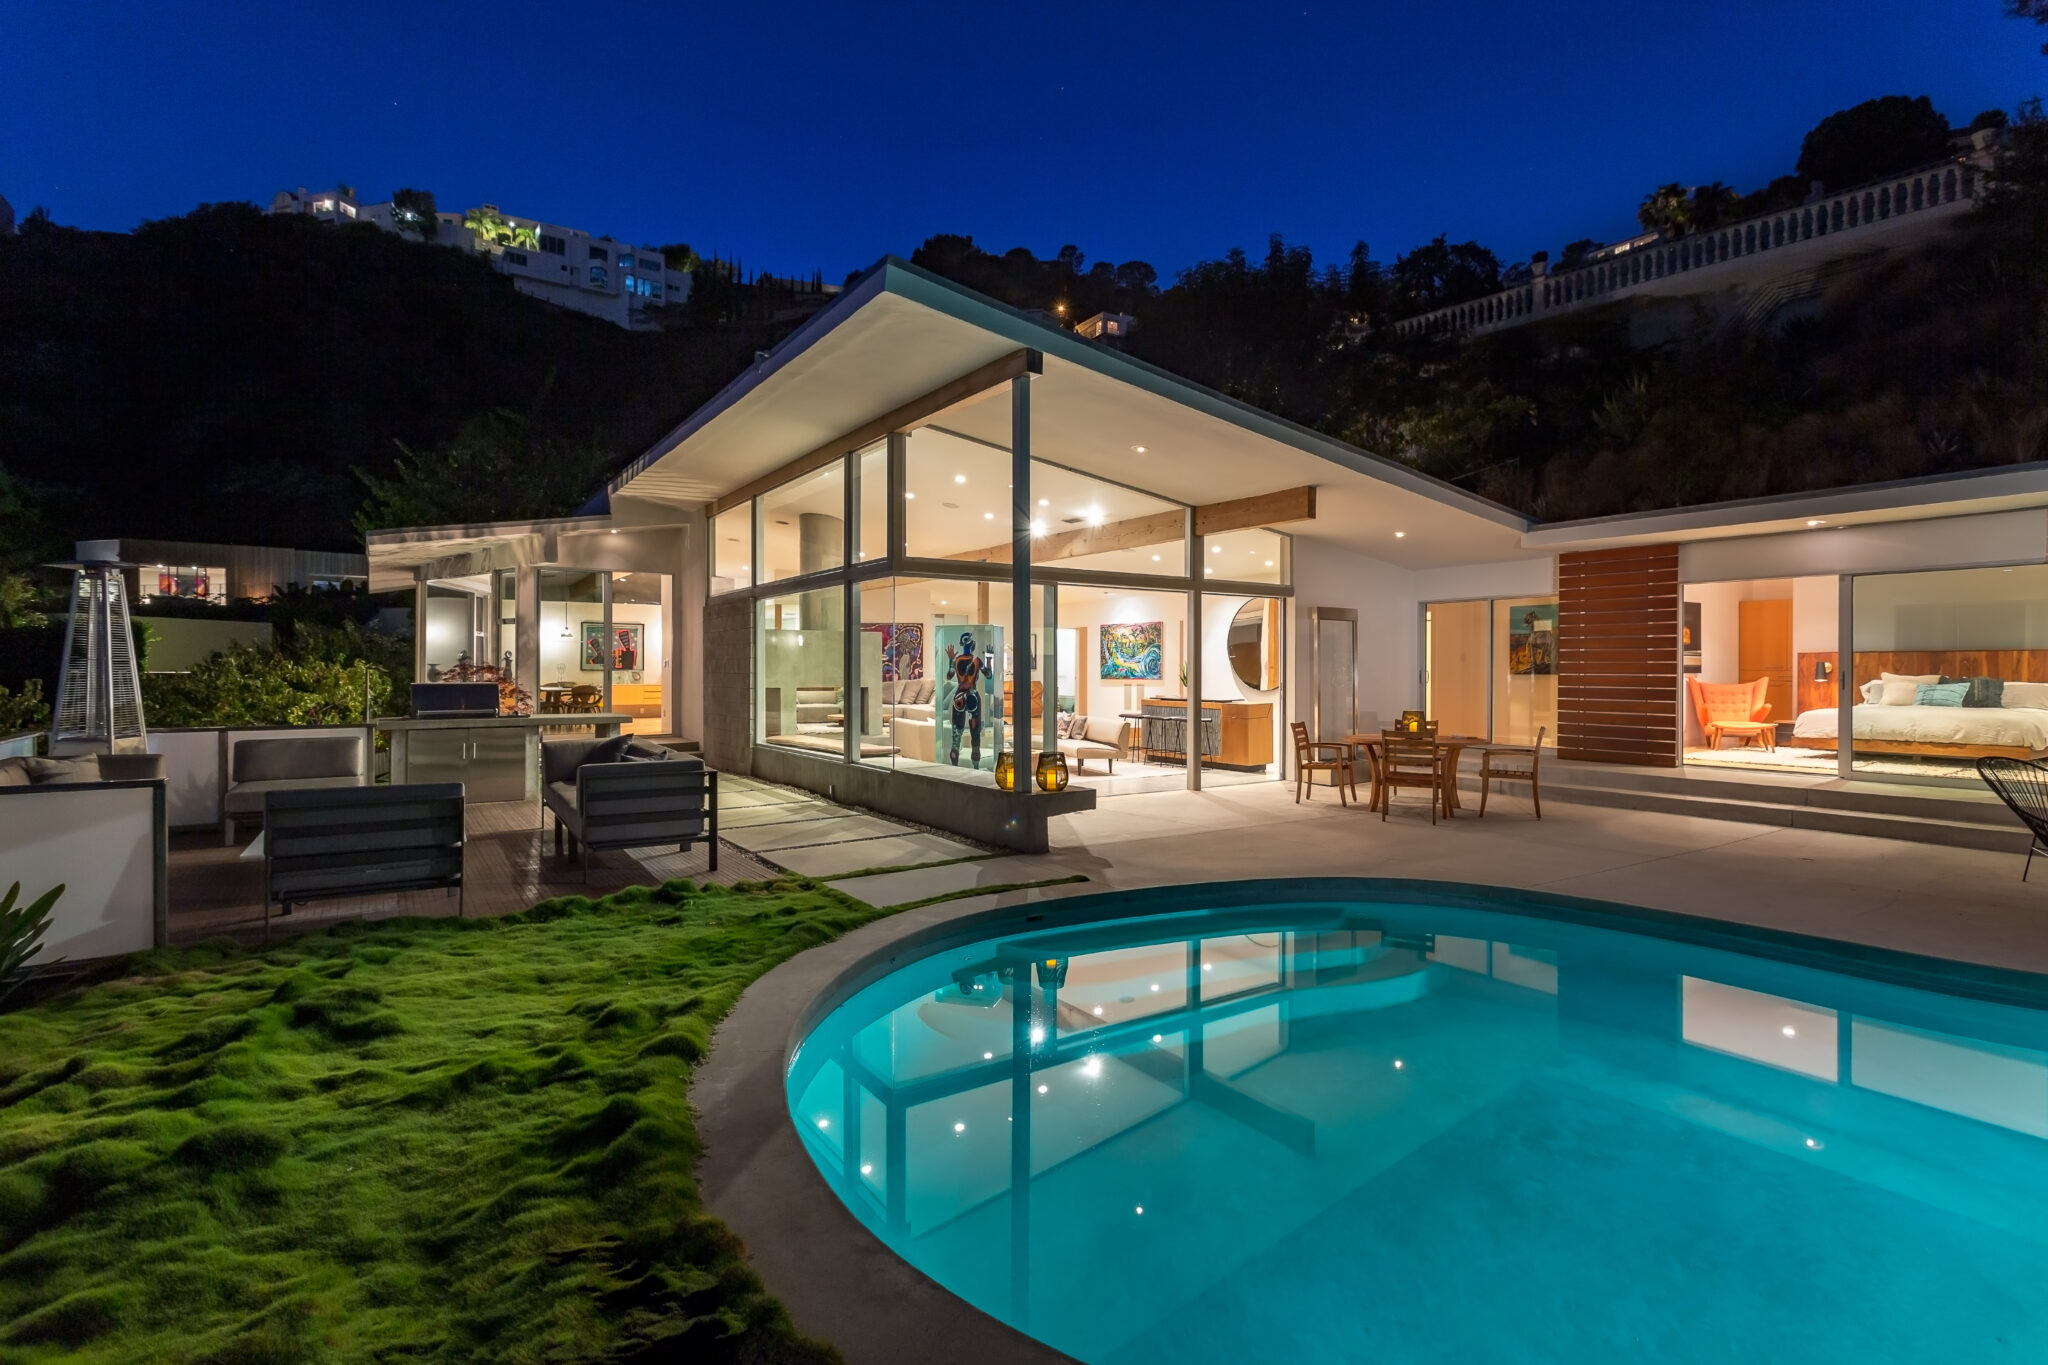 jase-sullivan-hollywood-hills-project-i9